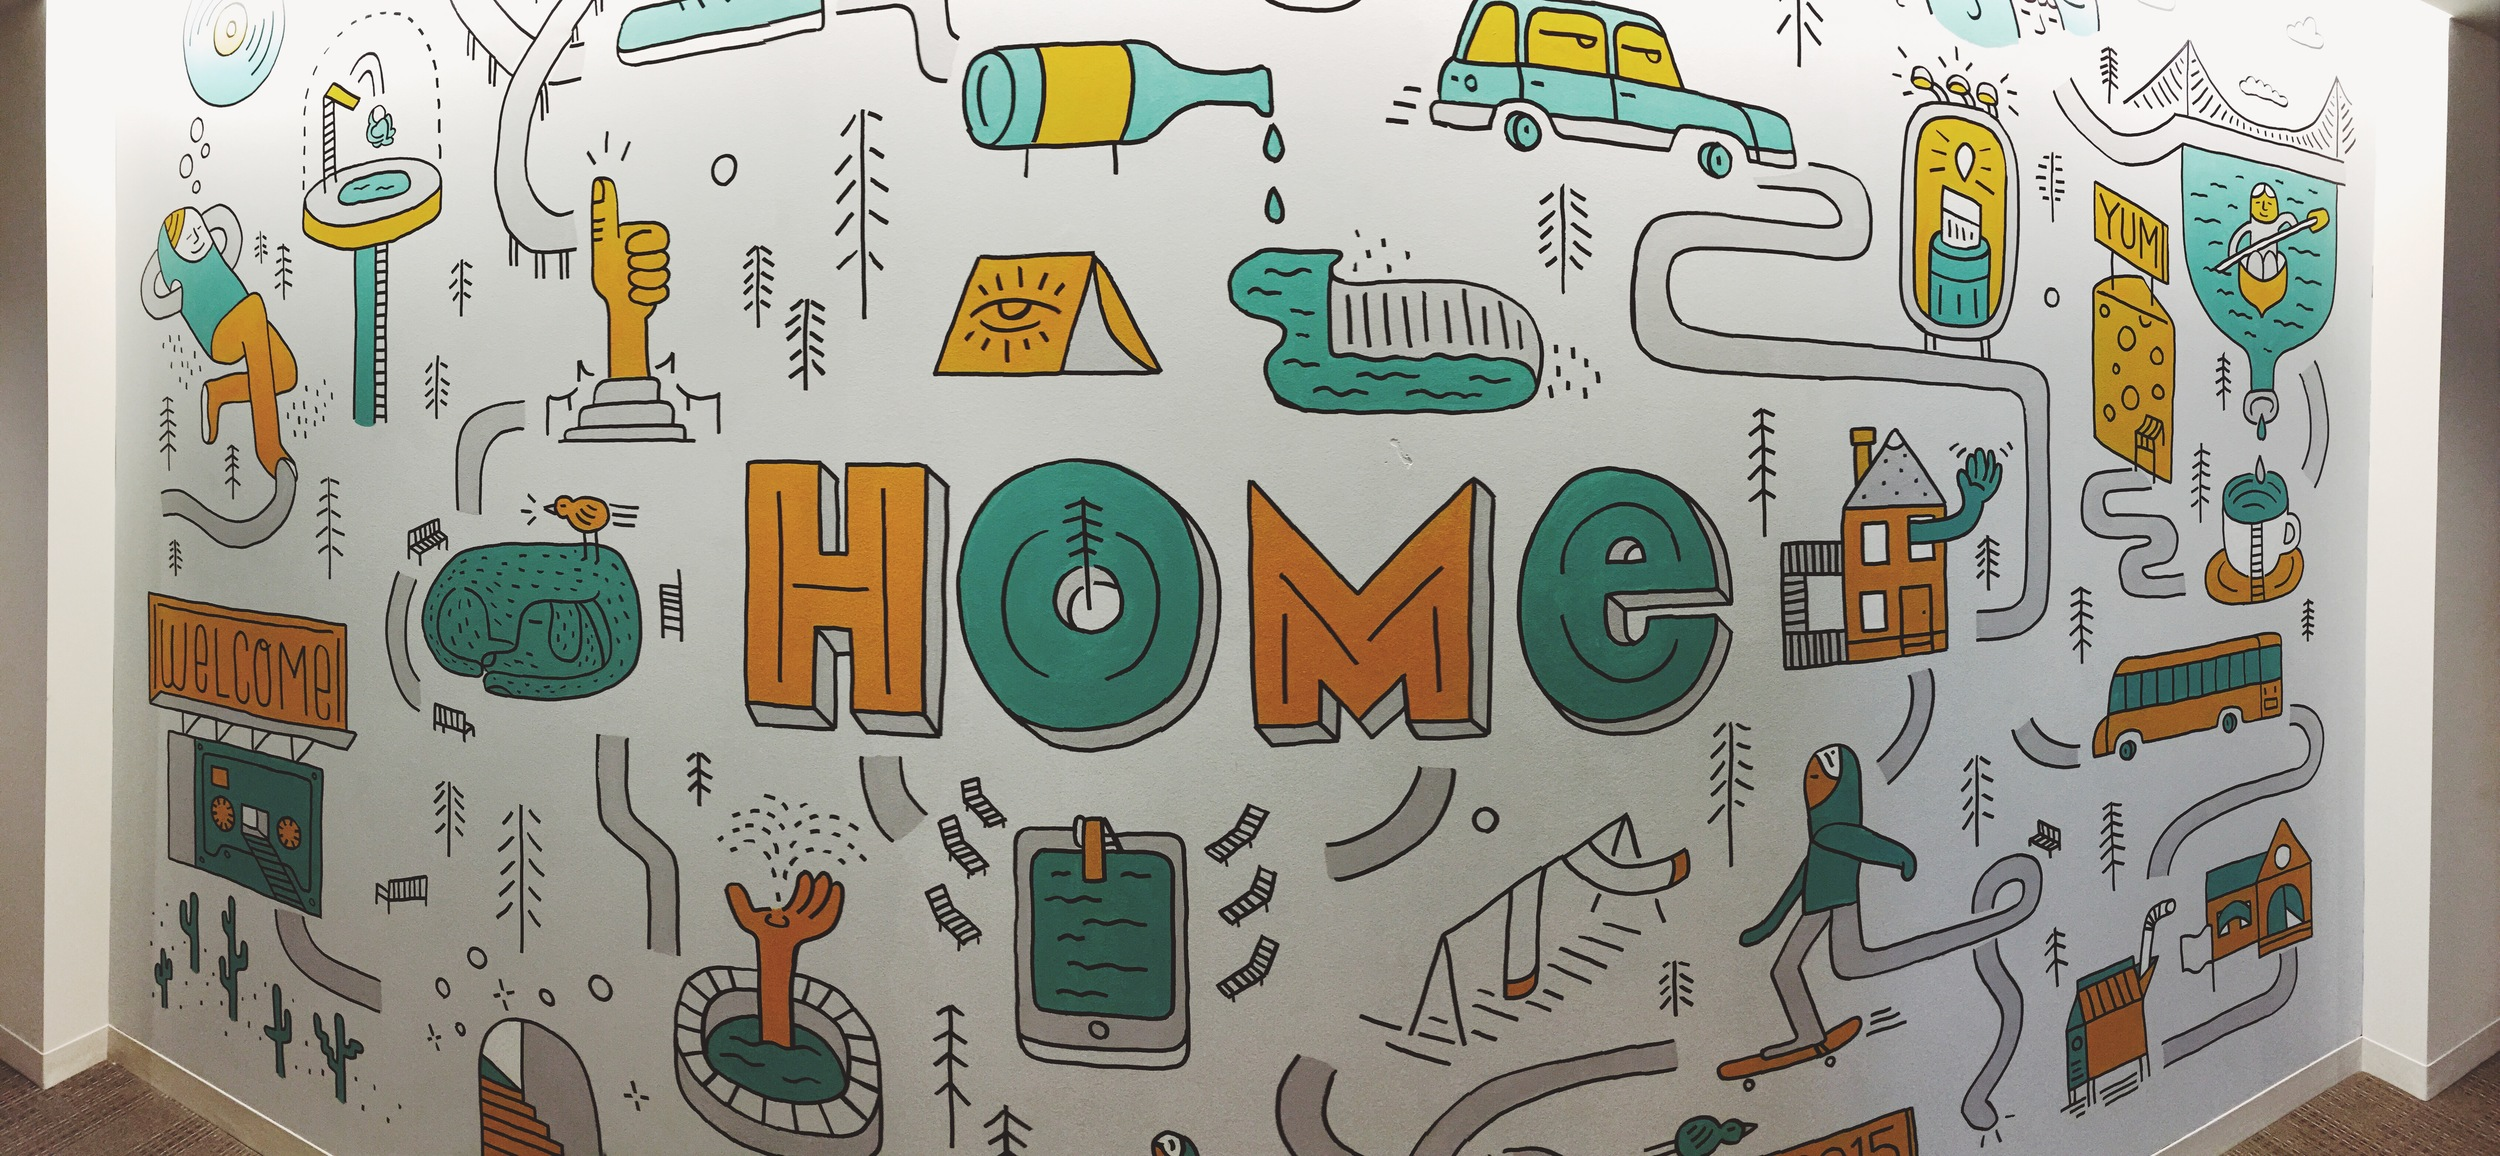 Home Mural for Mr. Cooper Mortgage by Kyle Steed